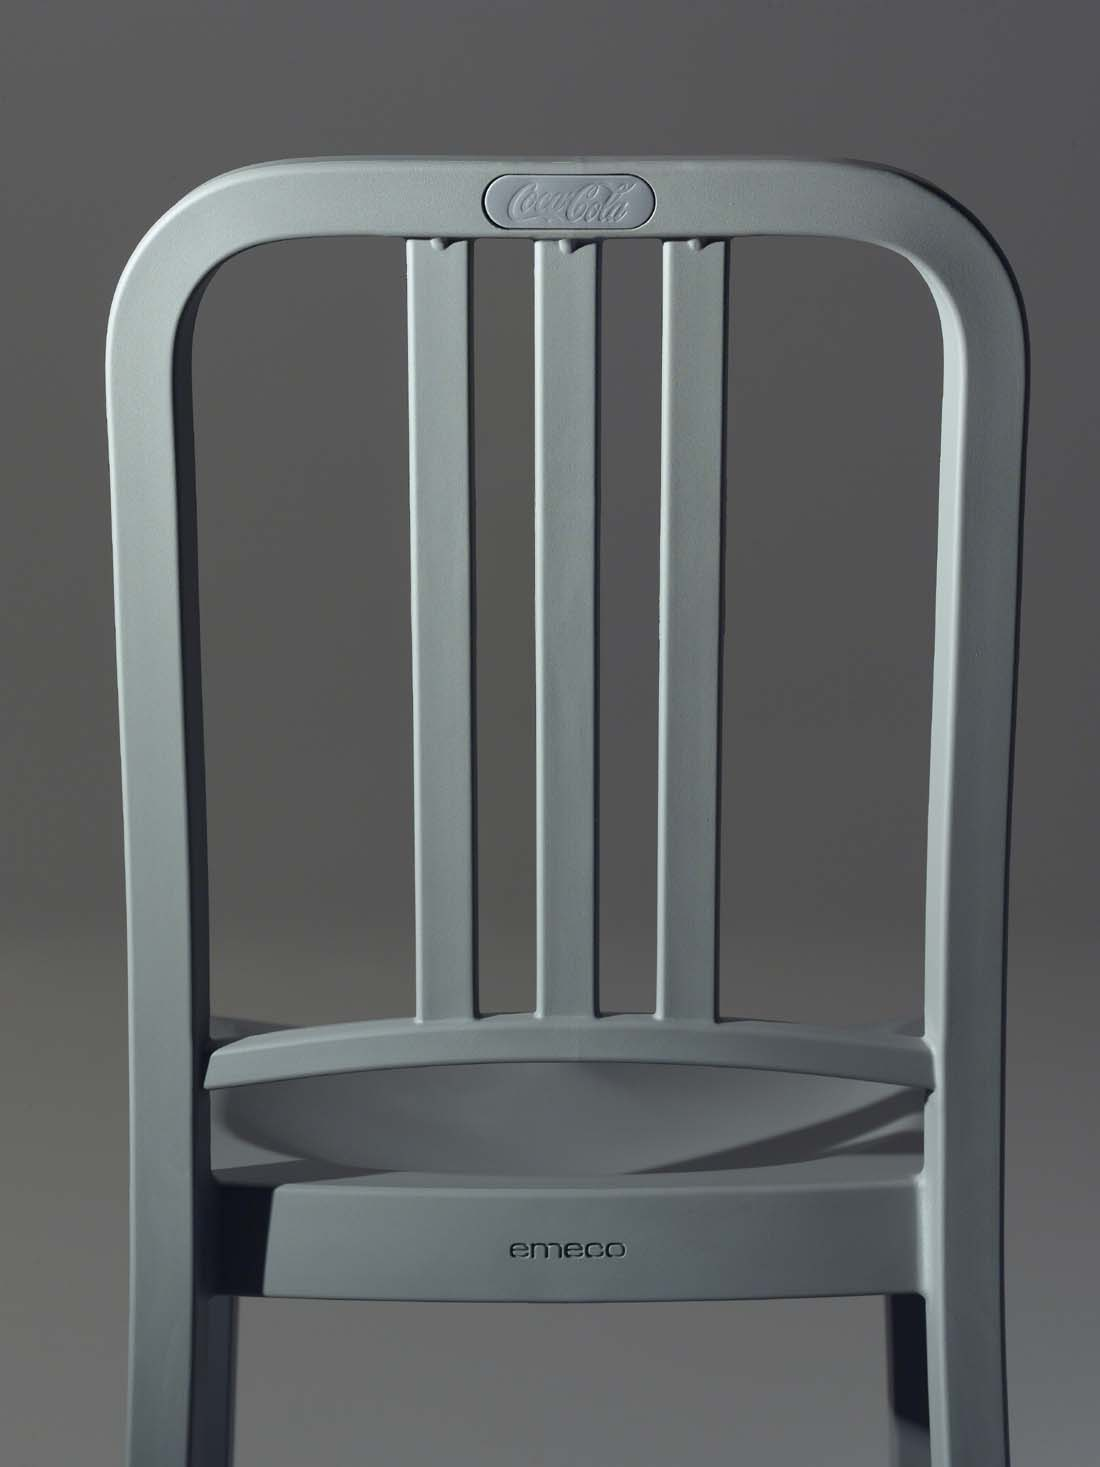 I Really Love The Idea That Coca Cola In Collaboration With Emeco Creating  Chairs Made From 111 Recycled Plastic Bottles, Called 111 Navy Chair, ...